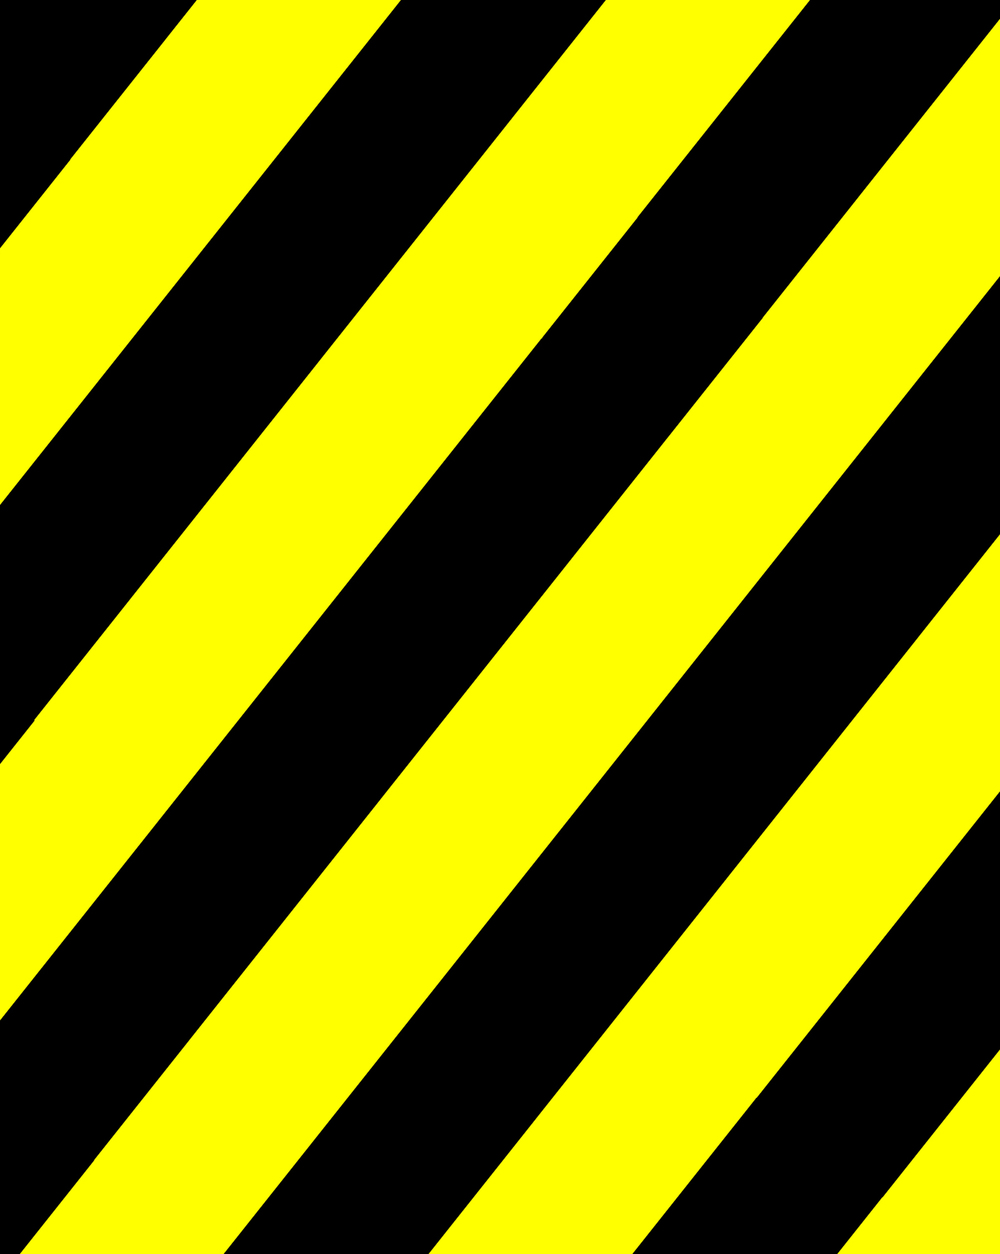 Yellow-Black-Stripes-iPad-1536-X-2048-EK.jpg